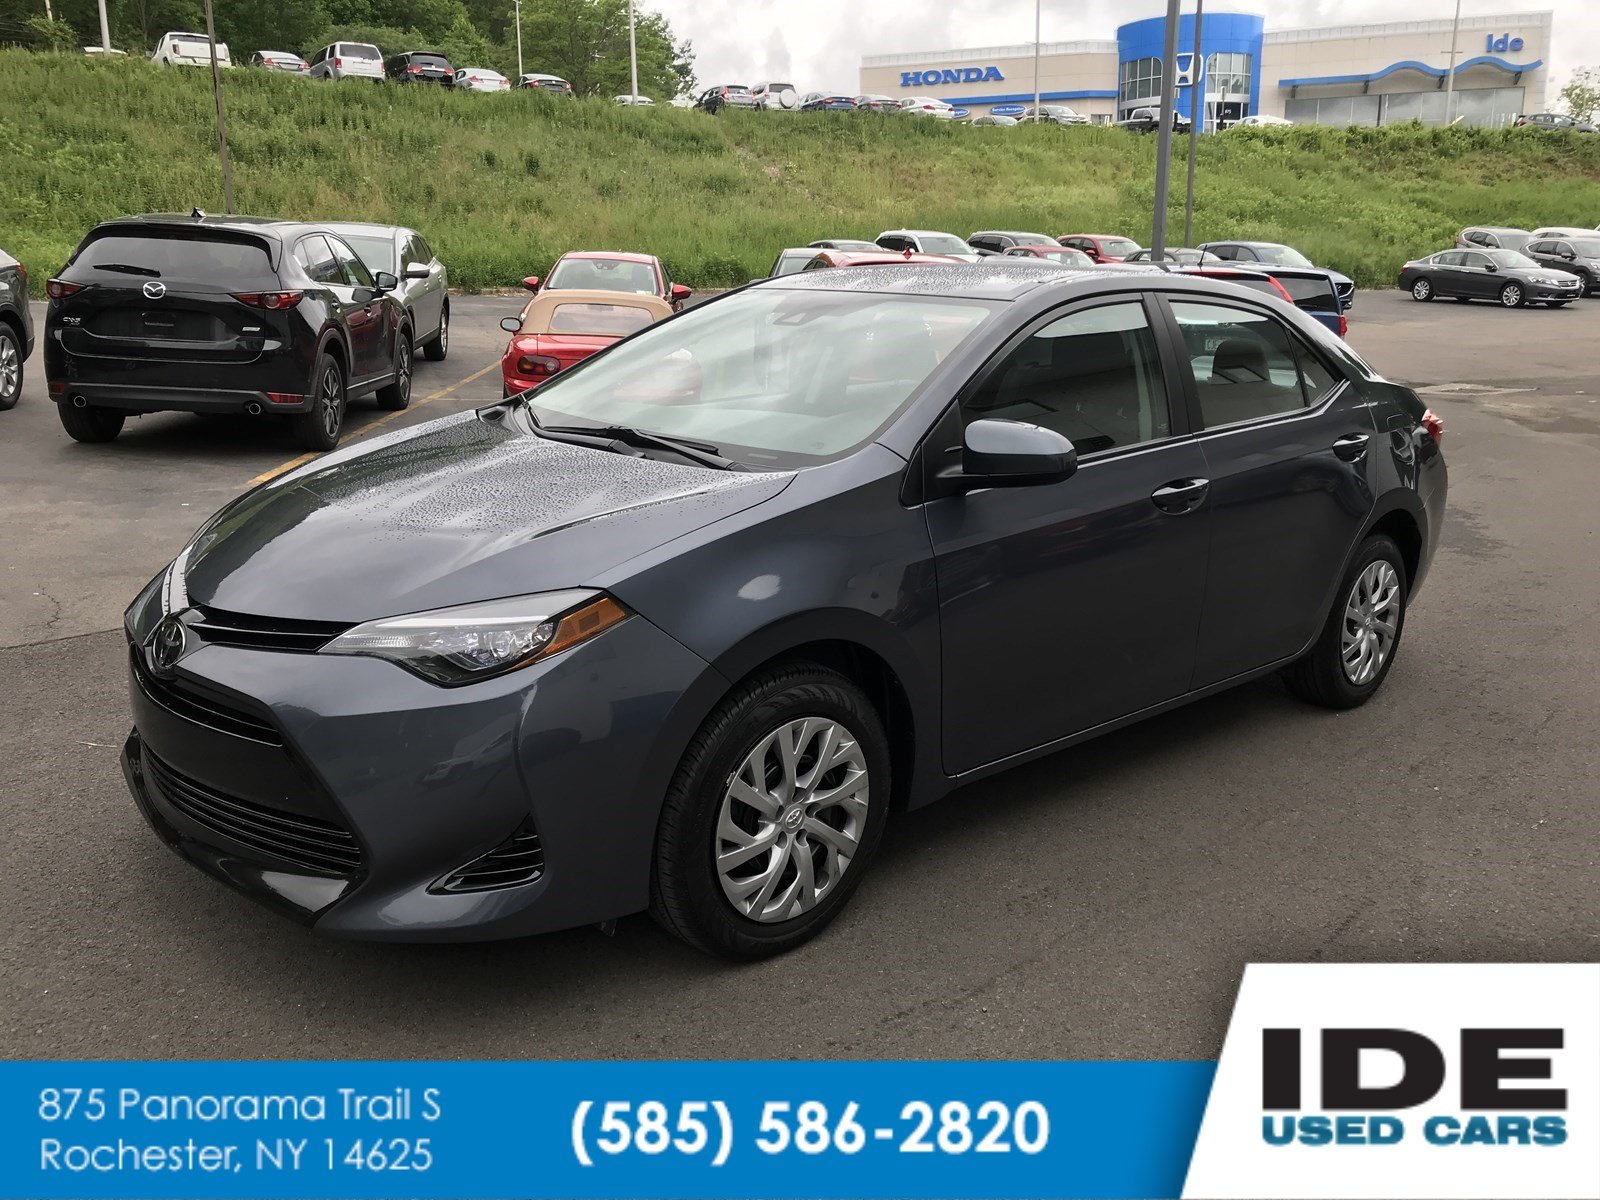 Toyota Used Cars Awesome Pre Owned 2017 toyota Corolla Le 4dr Car In Rochester Uh7883